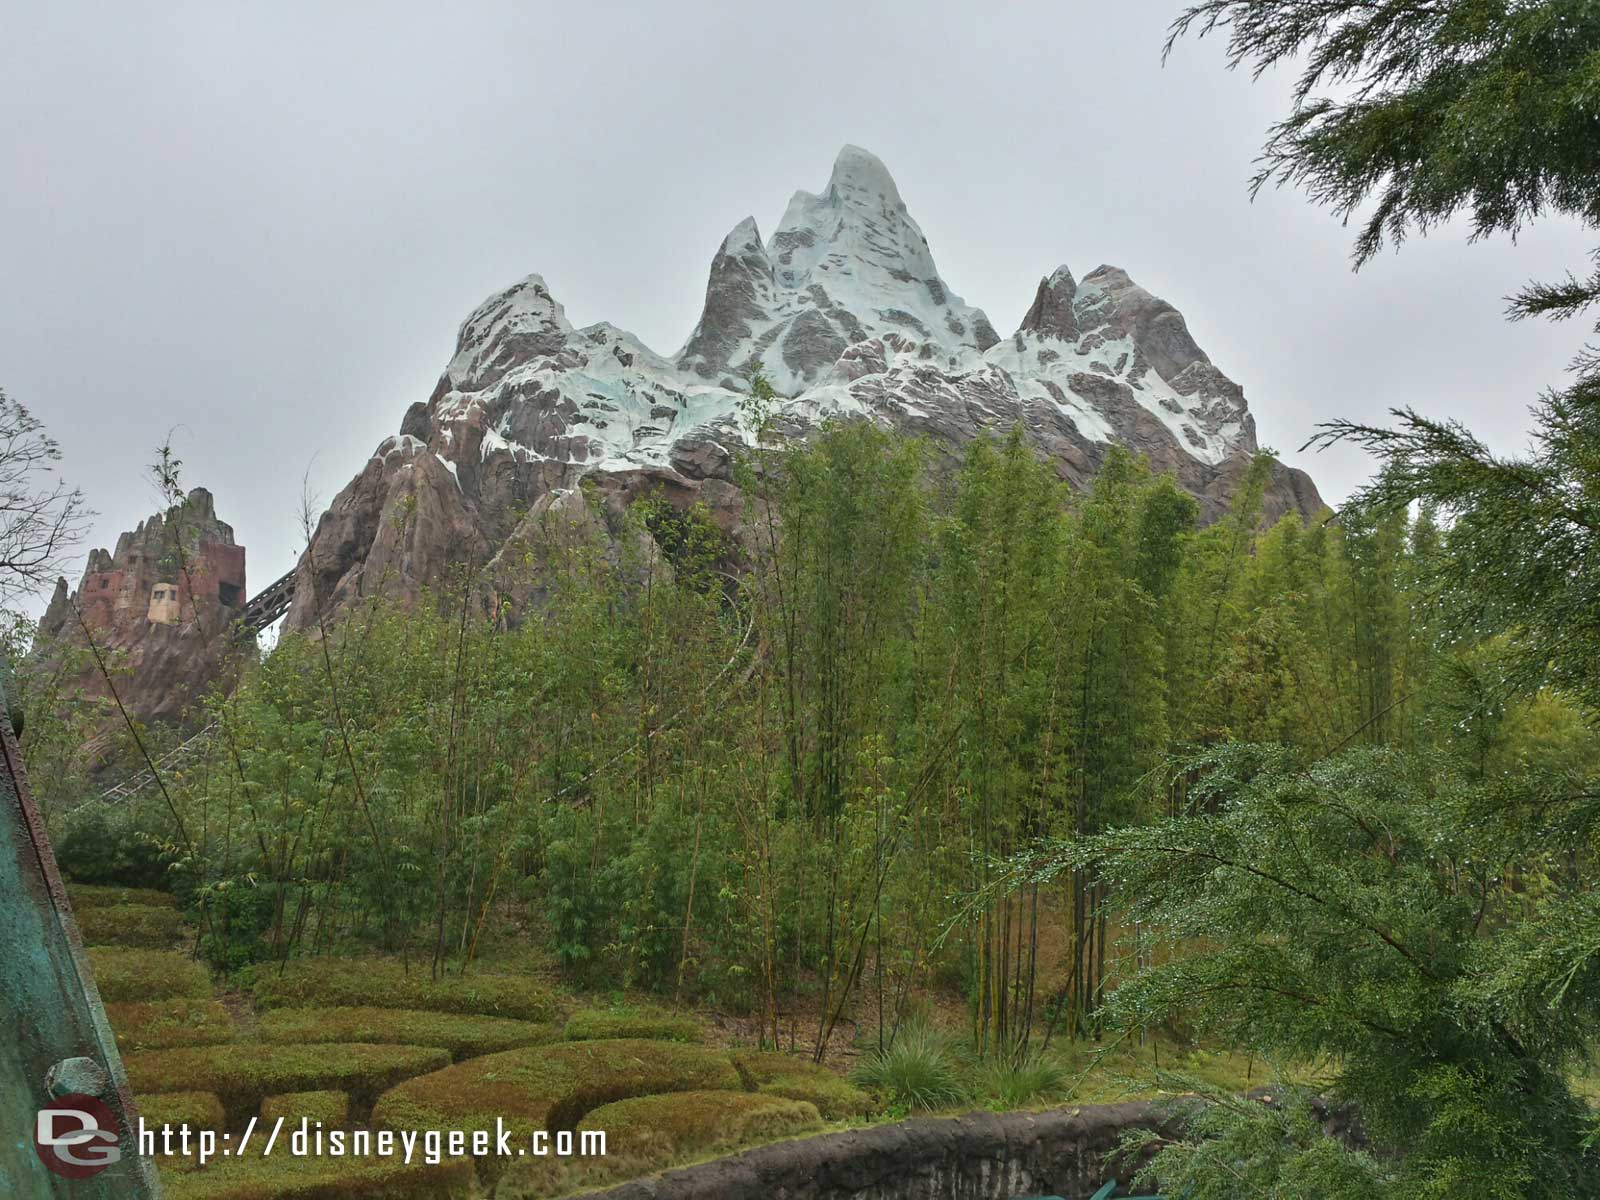 Expedition Everest on a rainy afternoon at Animal Kingdom